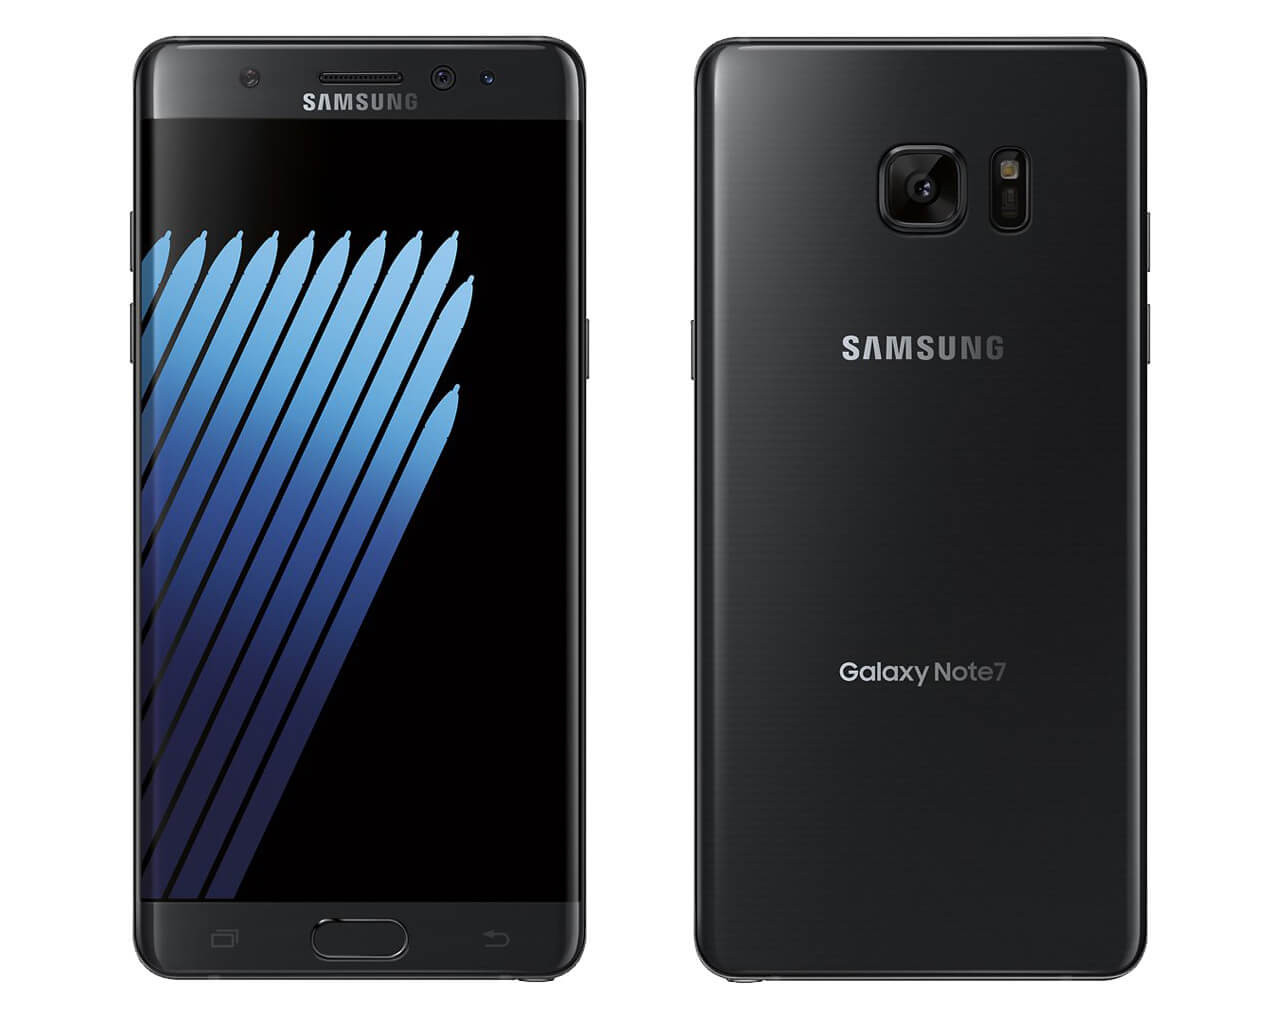 1474568640_samsung-galaxy-note-7-black-onyx.jpg